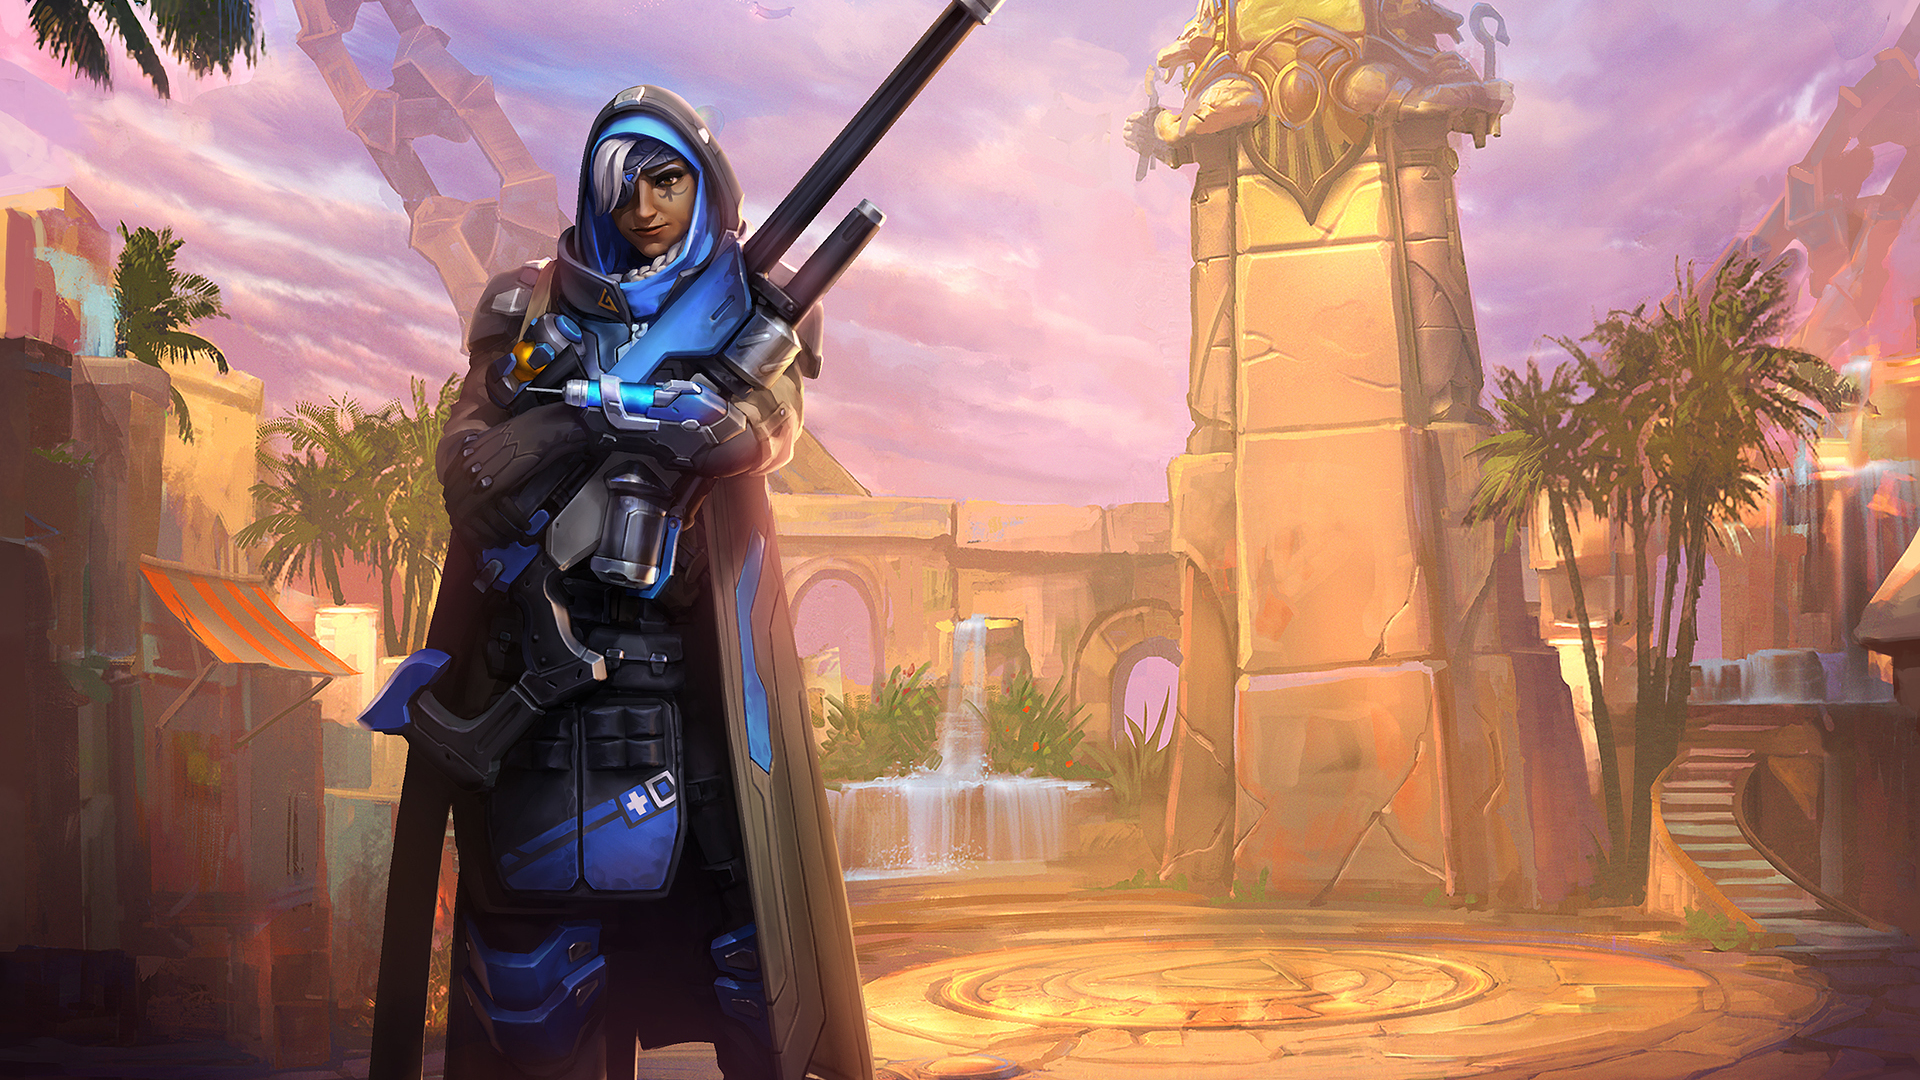 19x1080 Ana Overwatch Sniper Laptop Full Hd 1080p Hd 4k Wallpapers Images Backgrounds Photos And Pictures